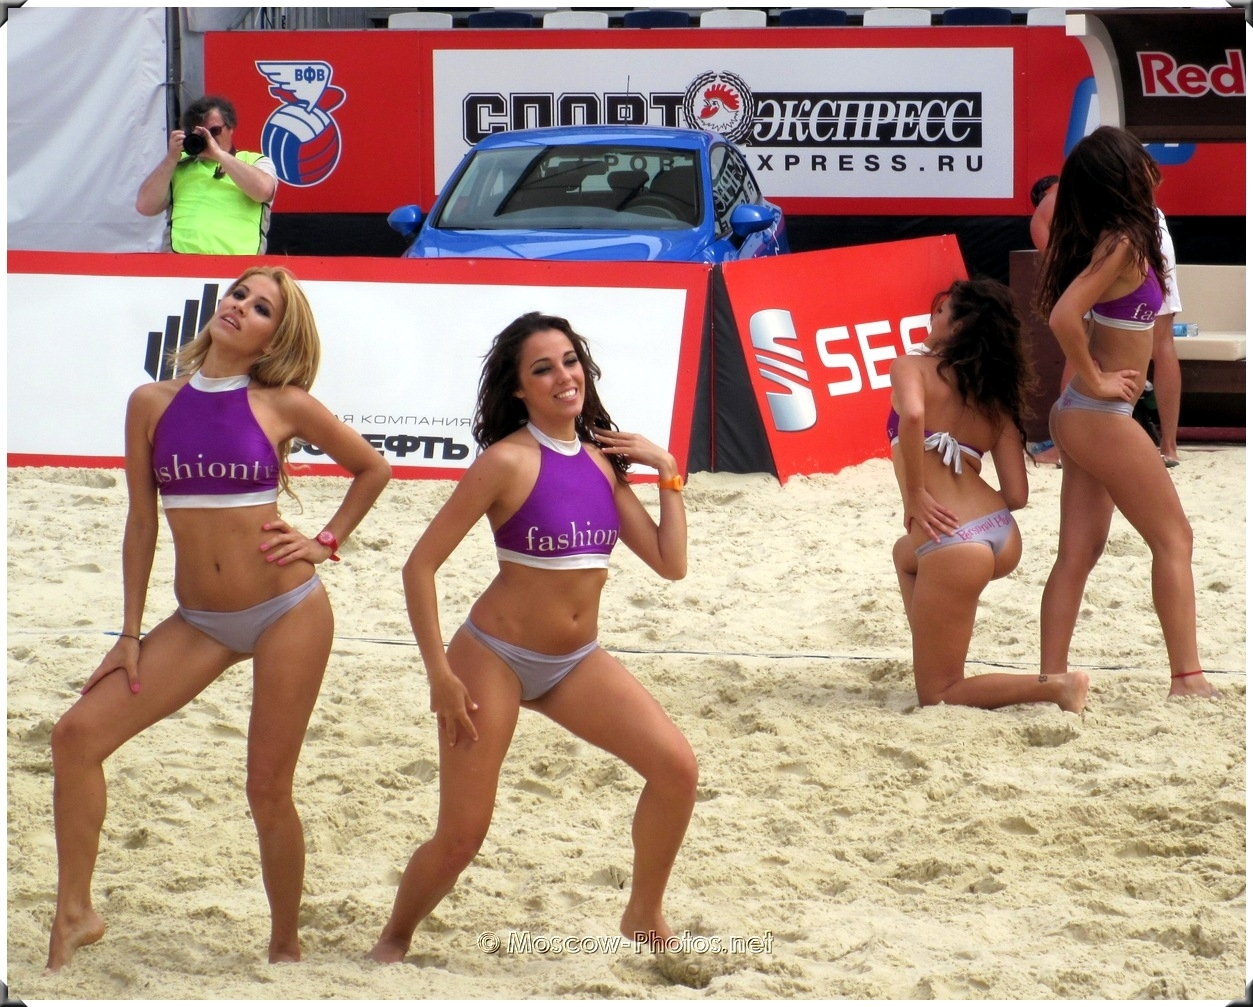 Dance of Fashion TV beach volleyball girls